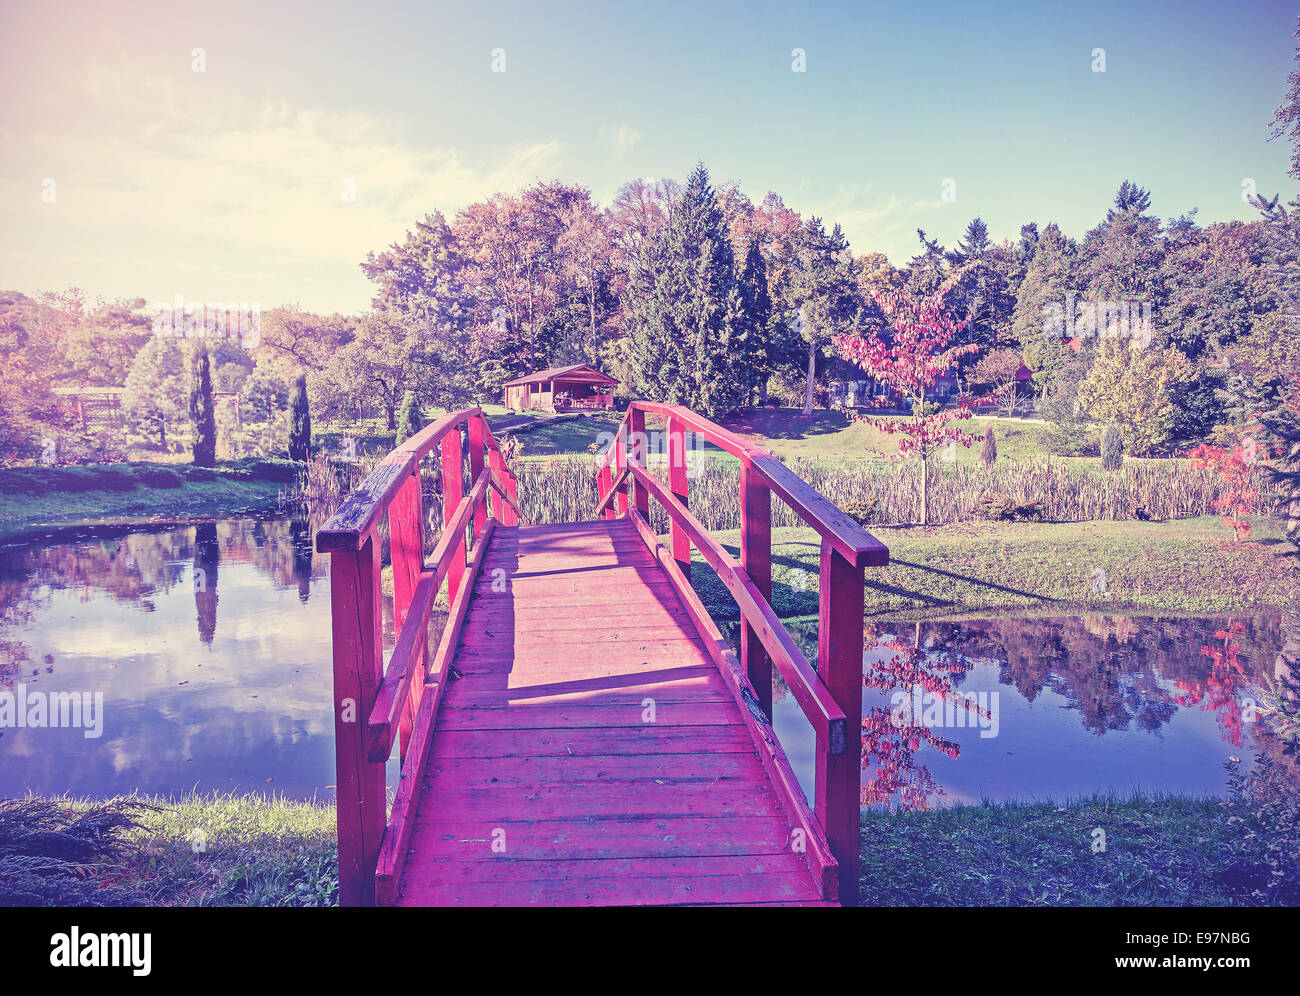 Vintage picture of red bridge in garden. - Stock Image